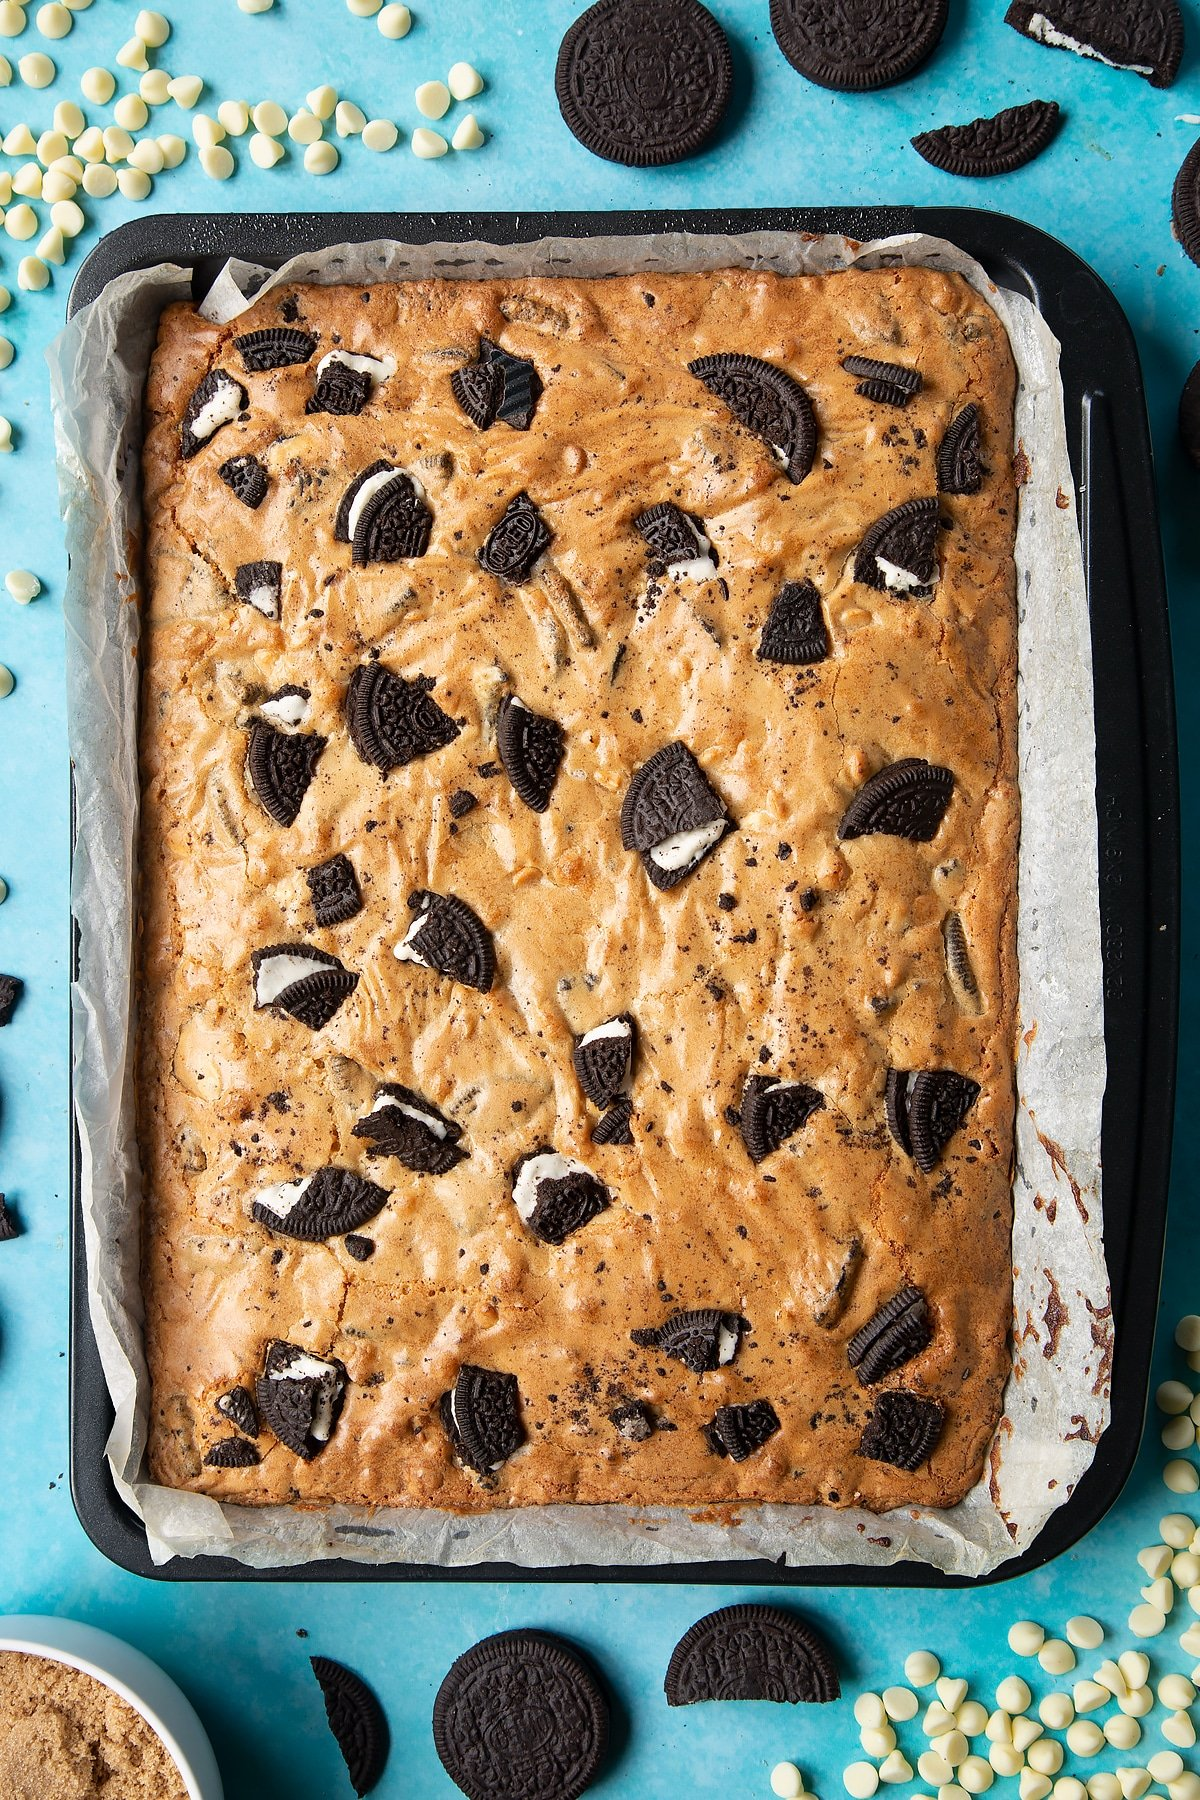 Overhead shot of baked Oreo Blondie in a lined baking tray